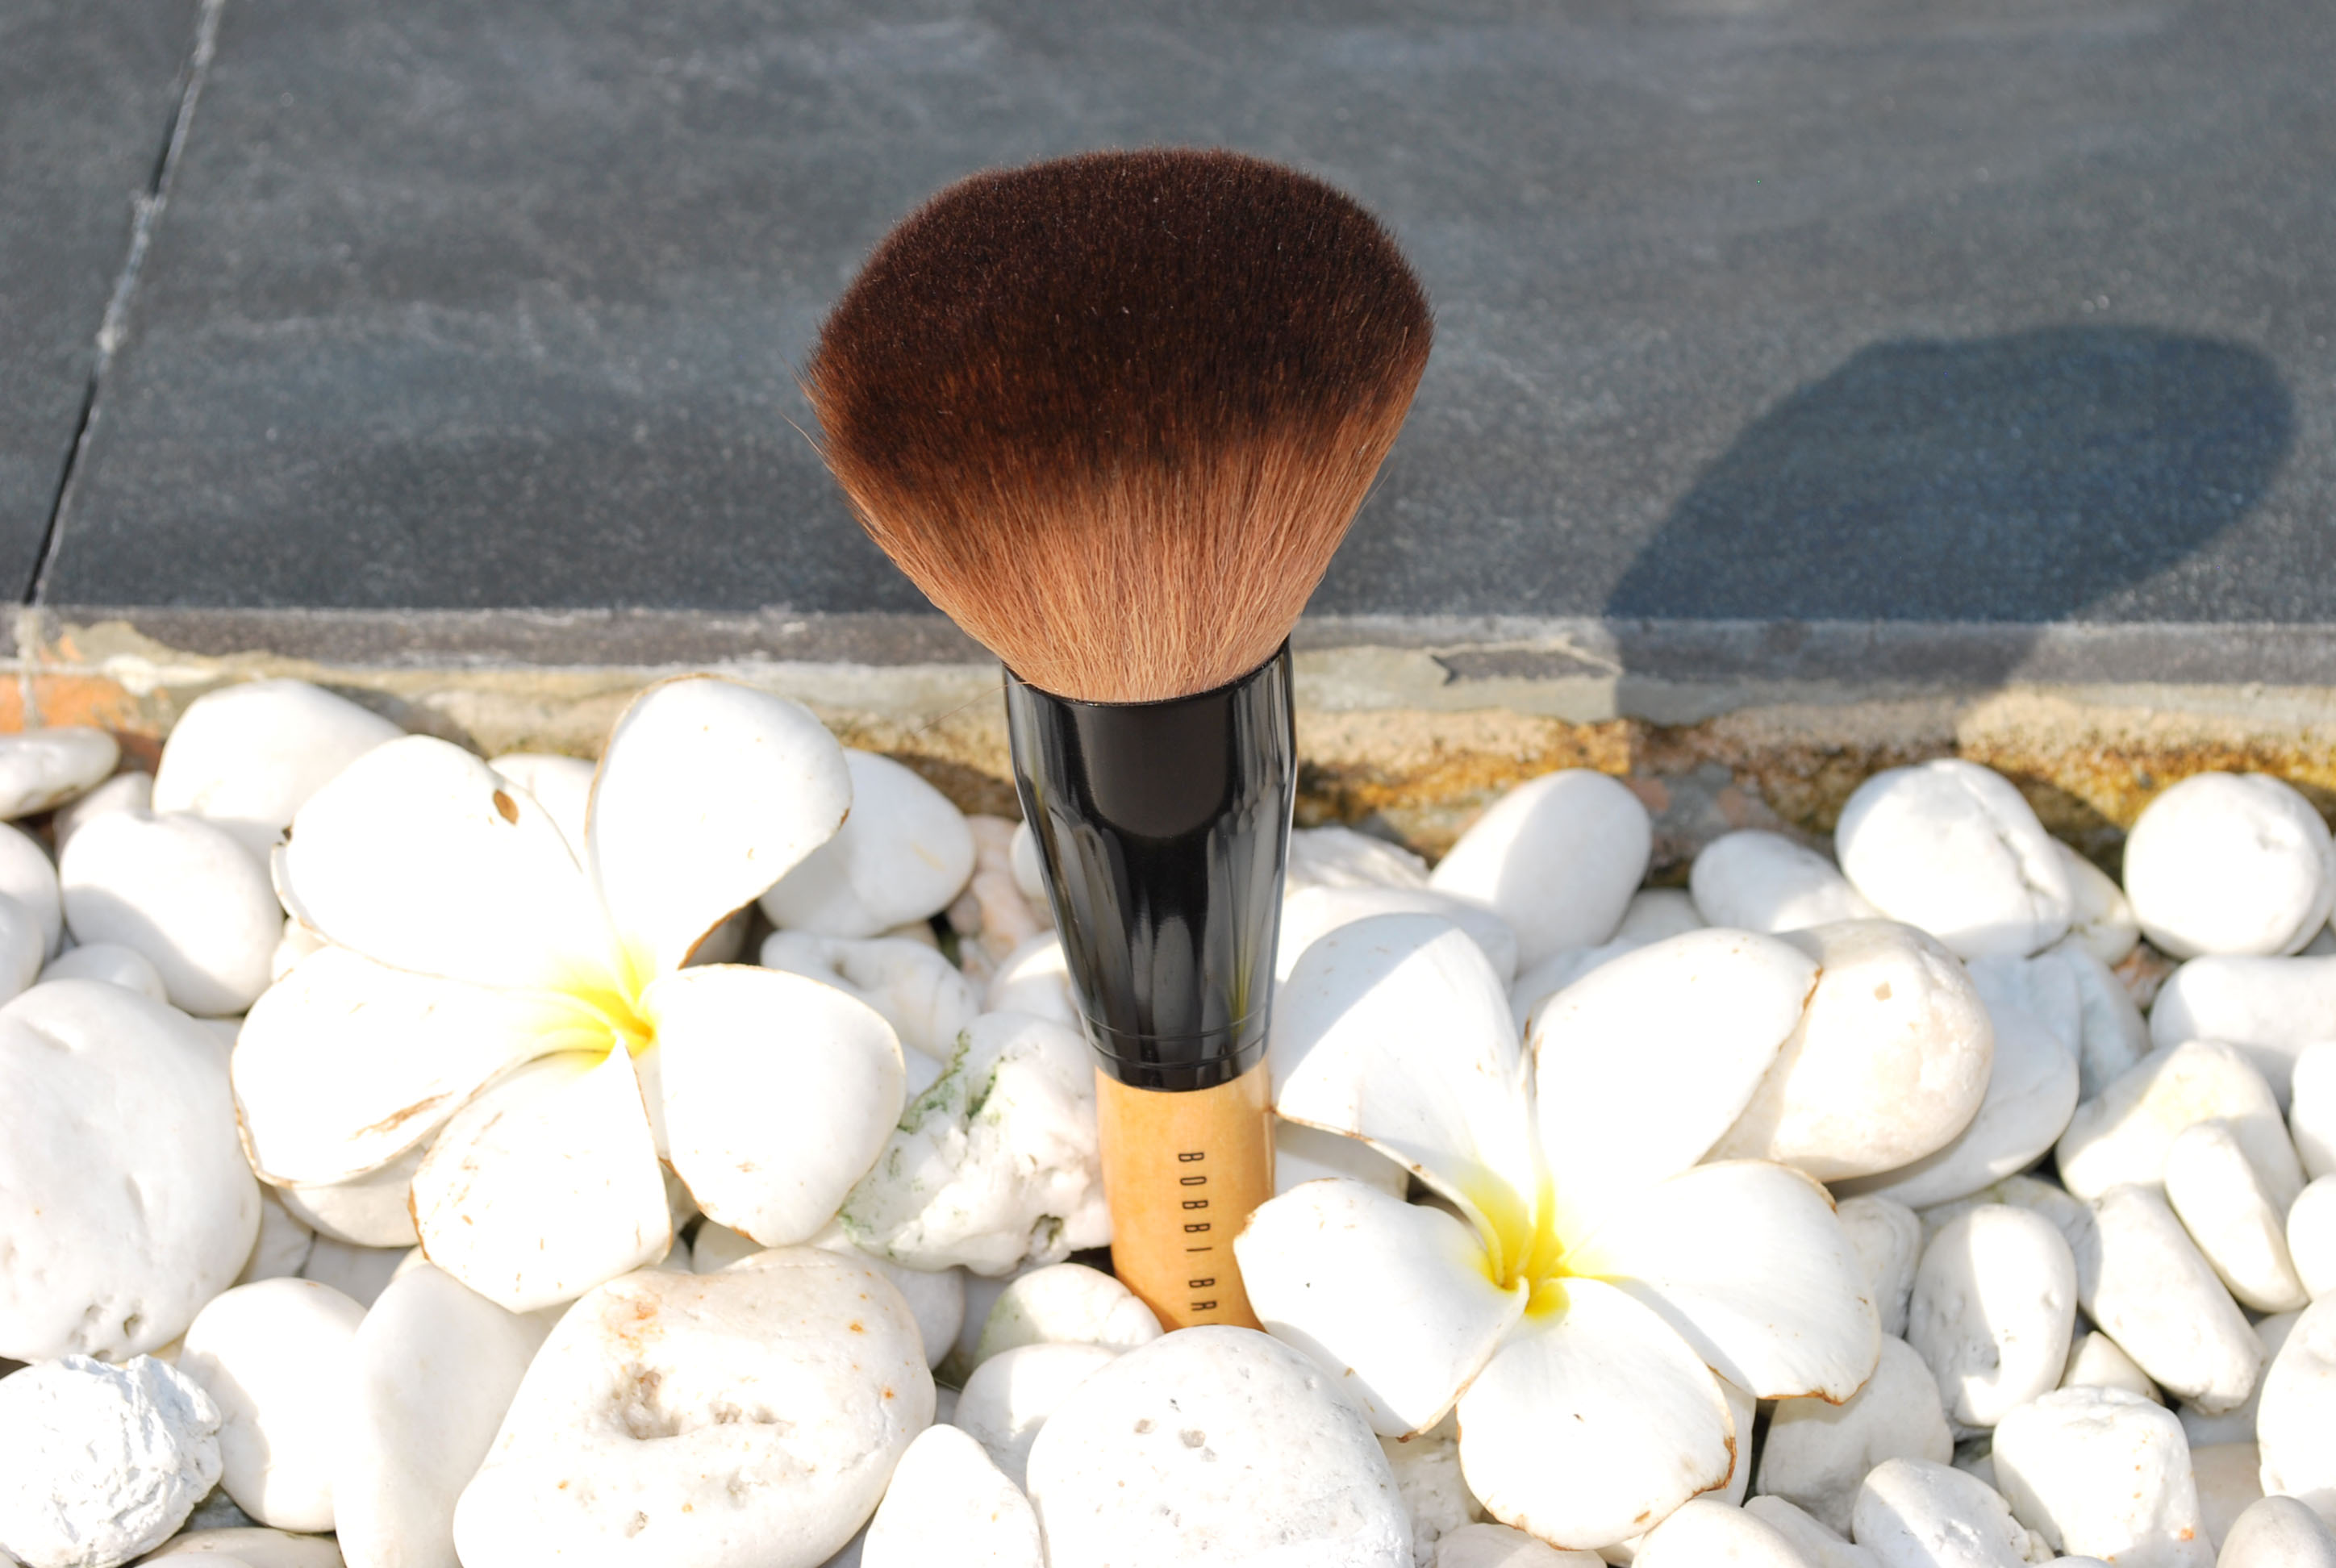 dupe Bobbi Brown powder brush review